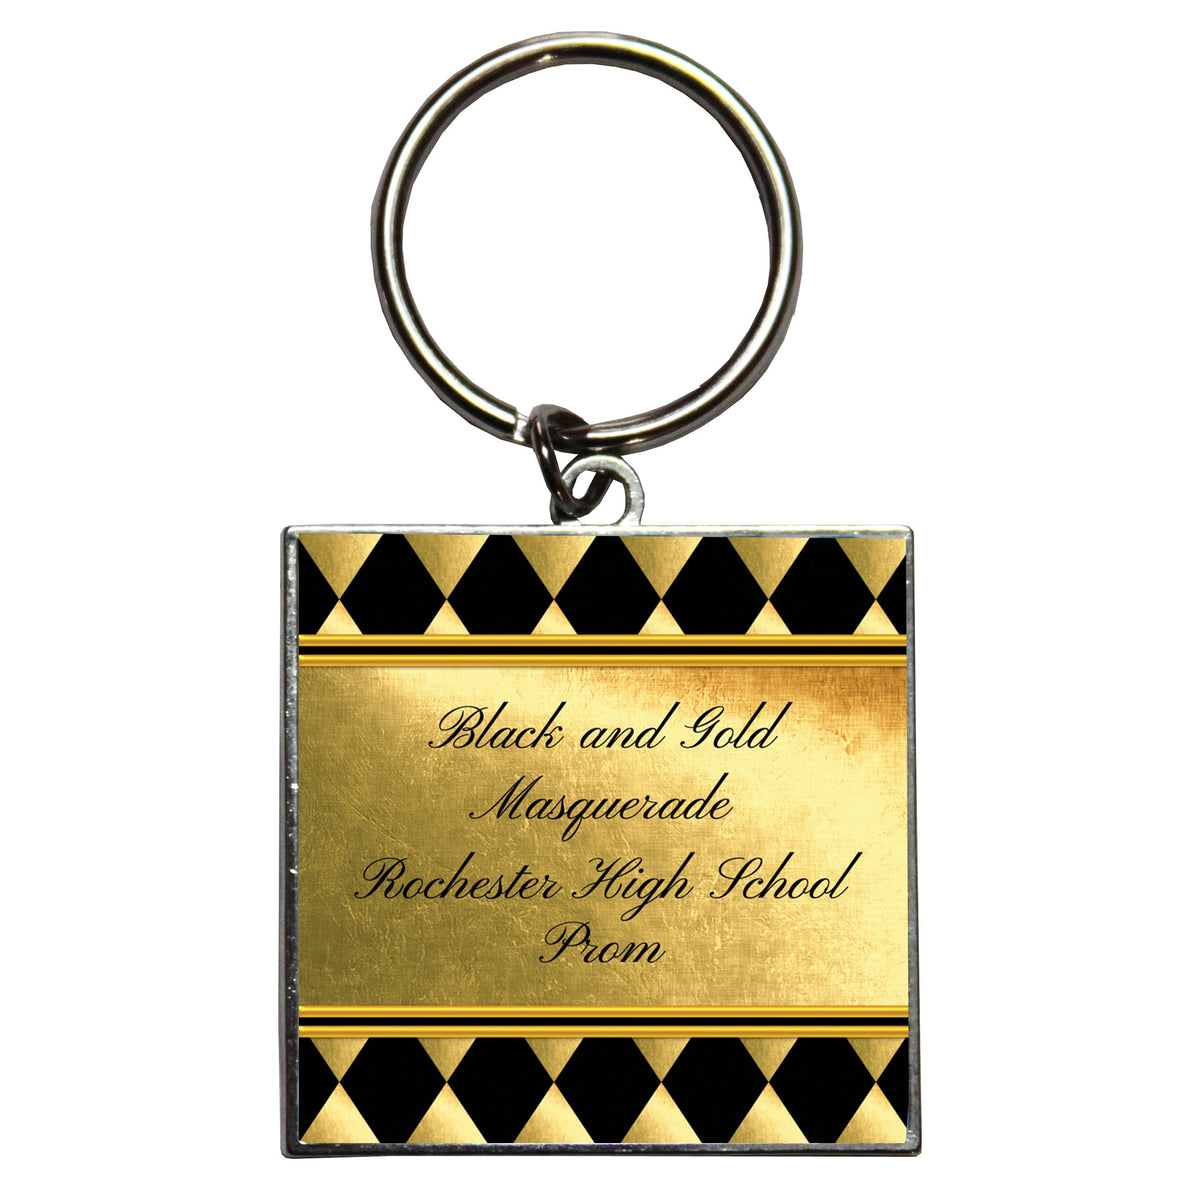 Black & Gold Masquerade Personalized Dome Key Chain